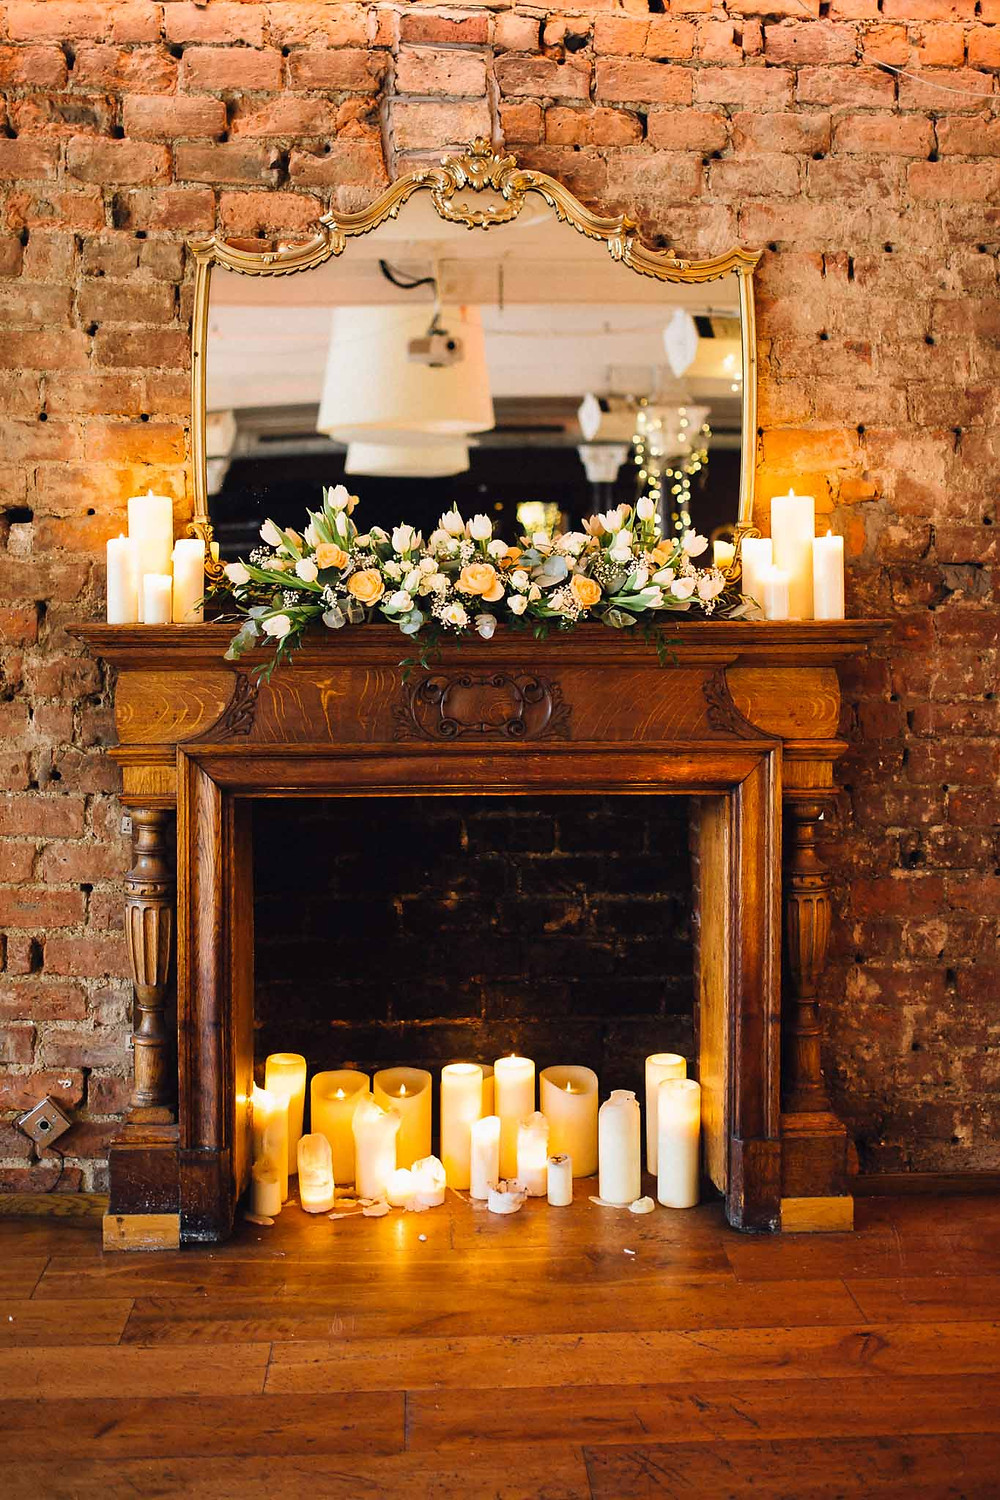 29 Glasgow, Fireplace, Image by Fairytale Asylum Photography